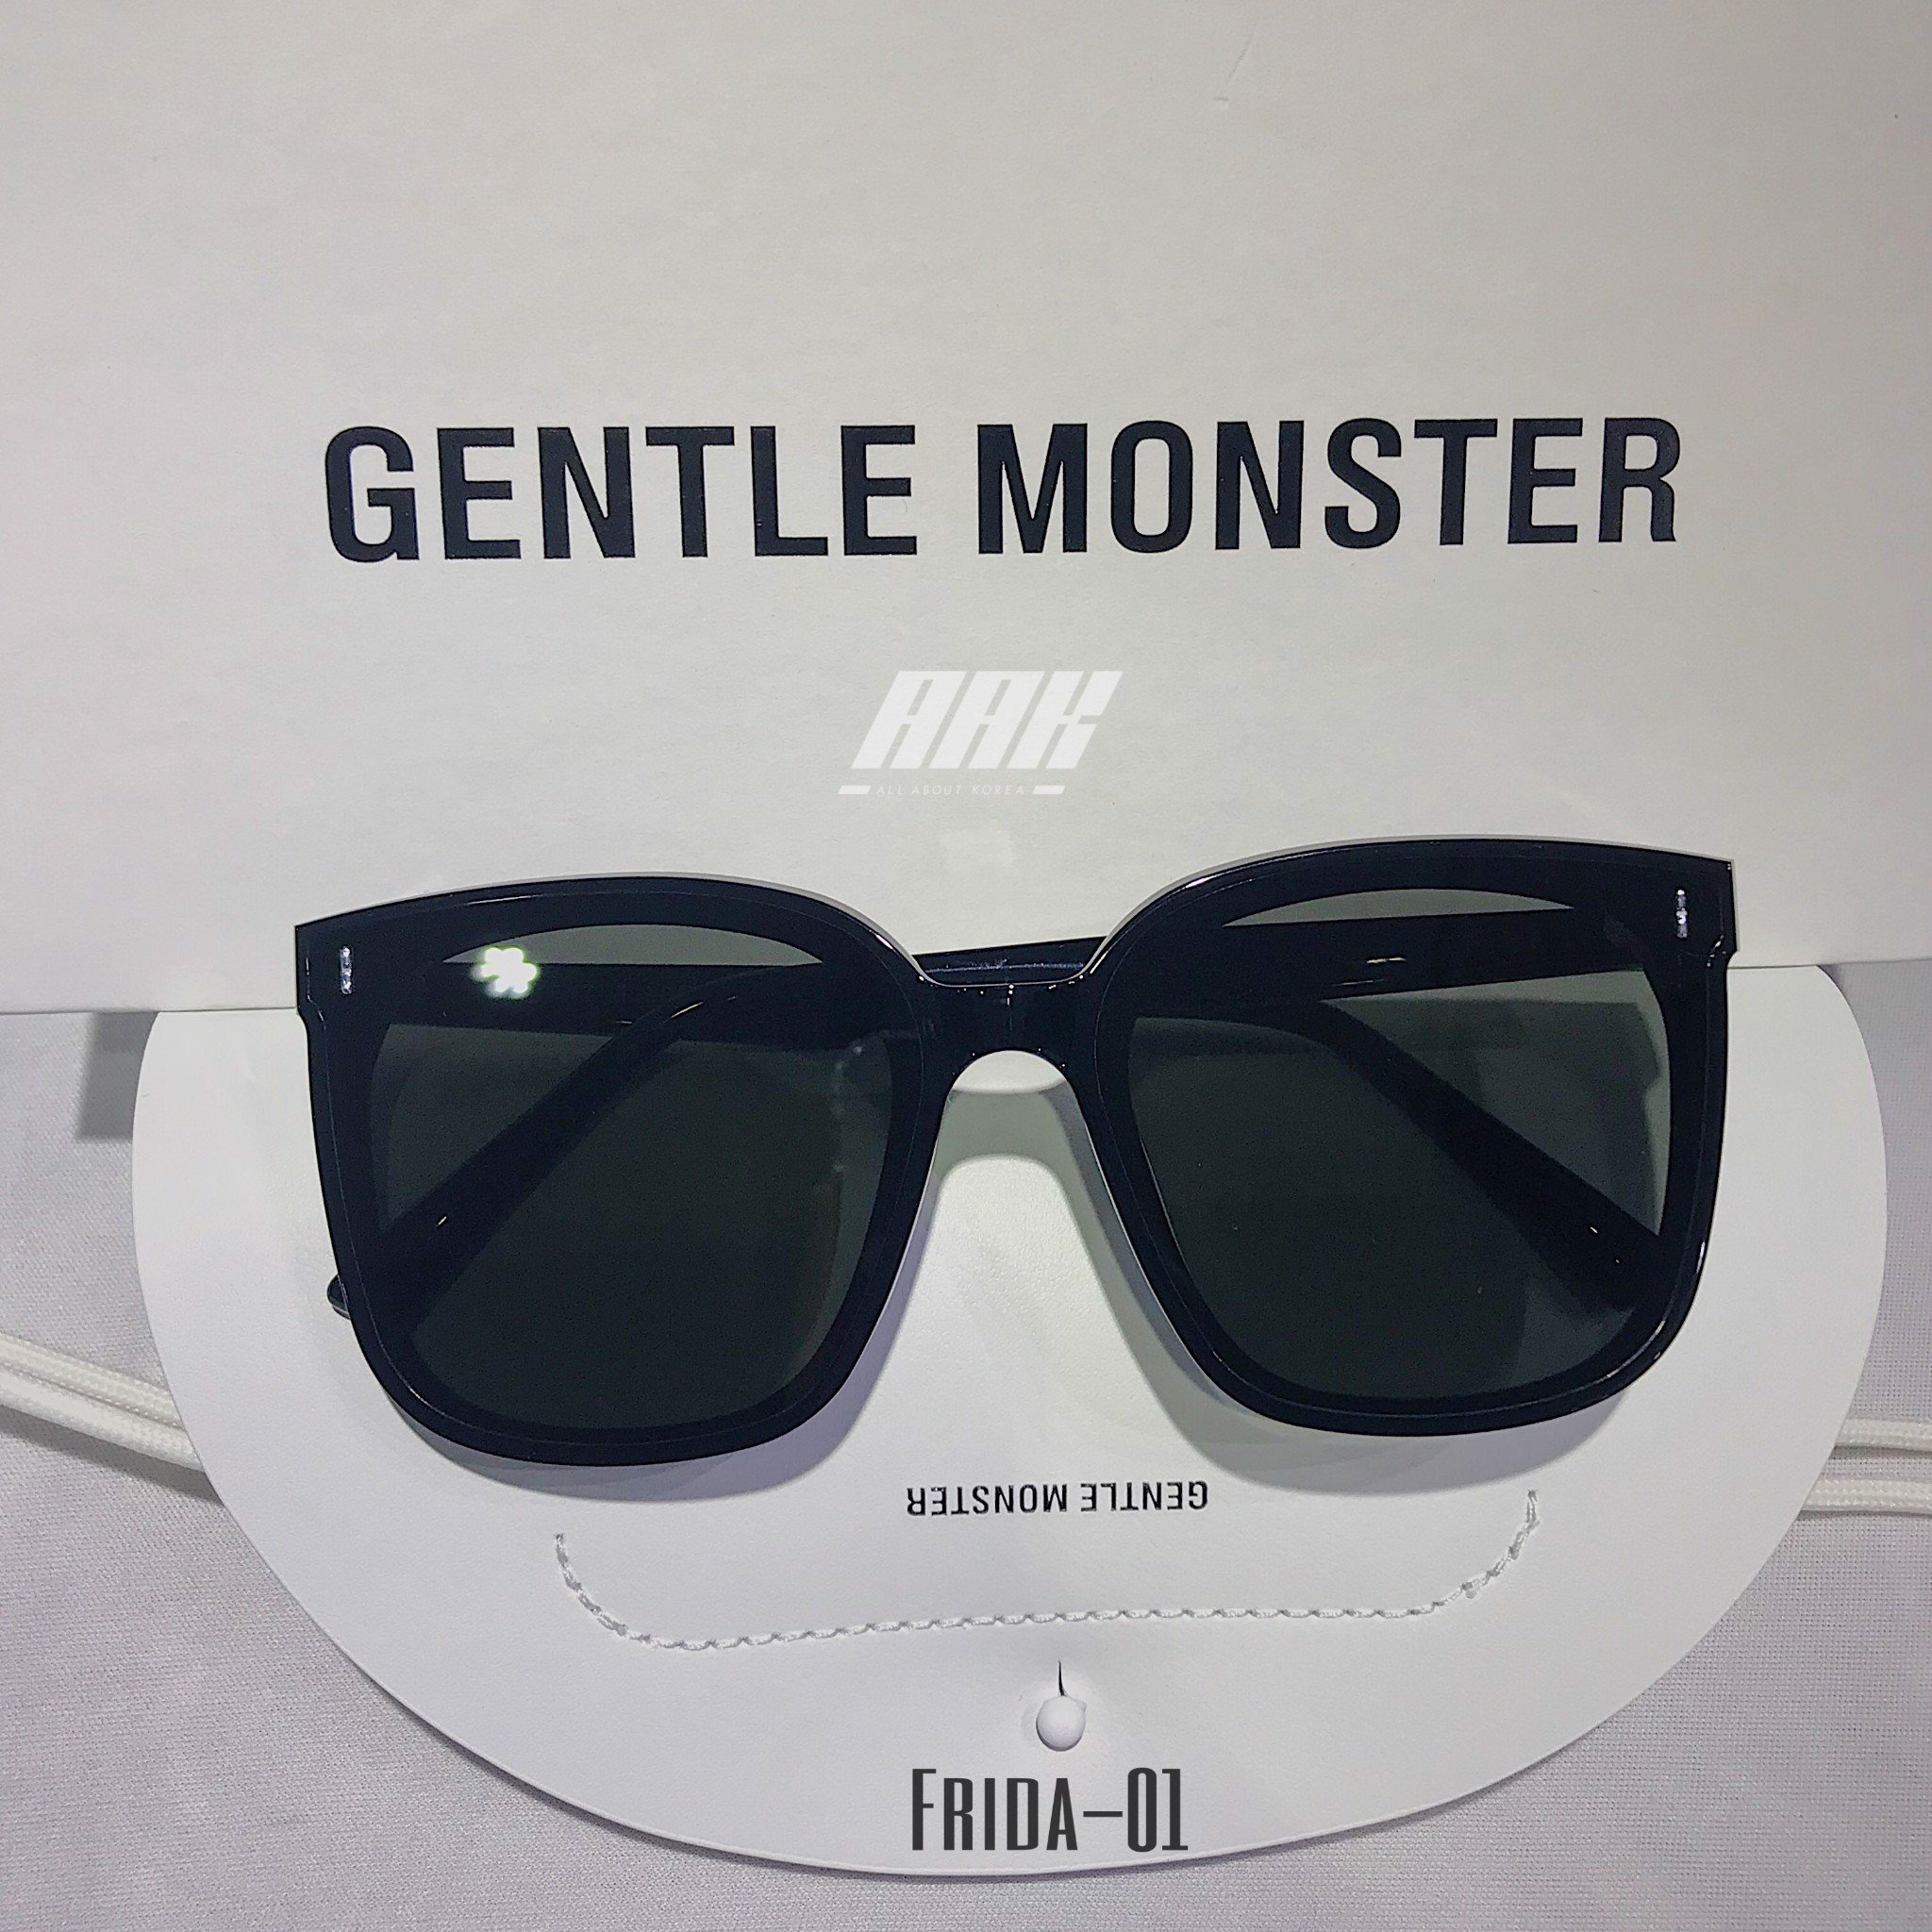 GENTLE MONSTER FRIDA 01